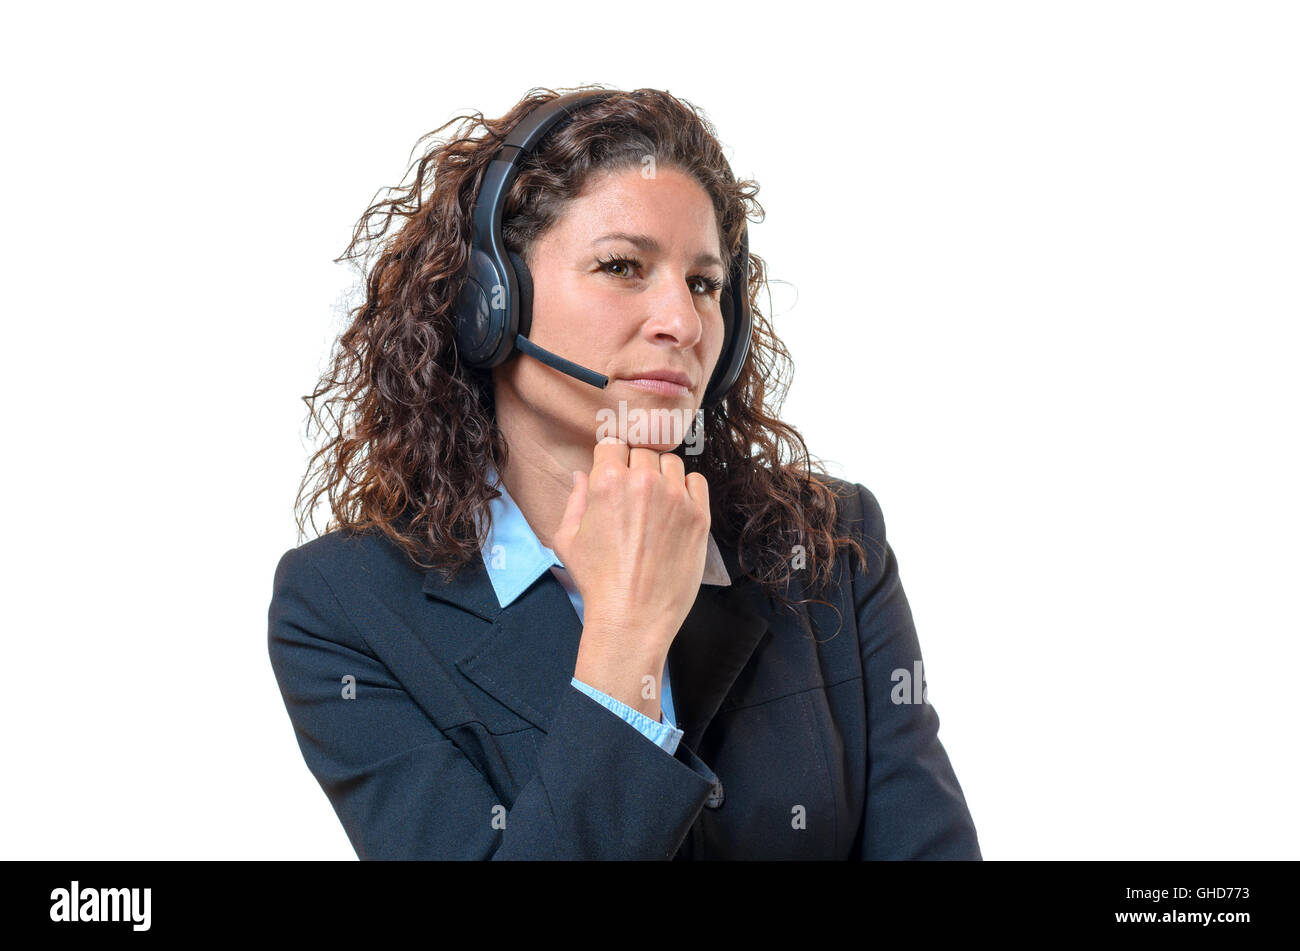 Speculative attractive young businesswoman wearing a headset looking sideways at the camera with a serious distrustful - Stock Image